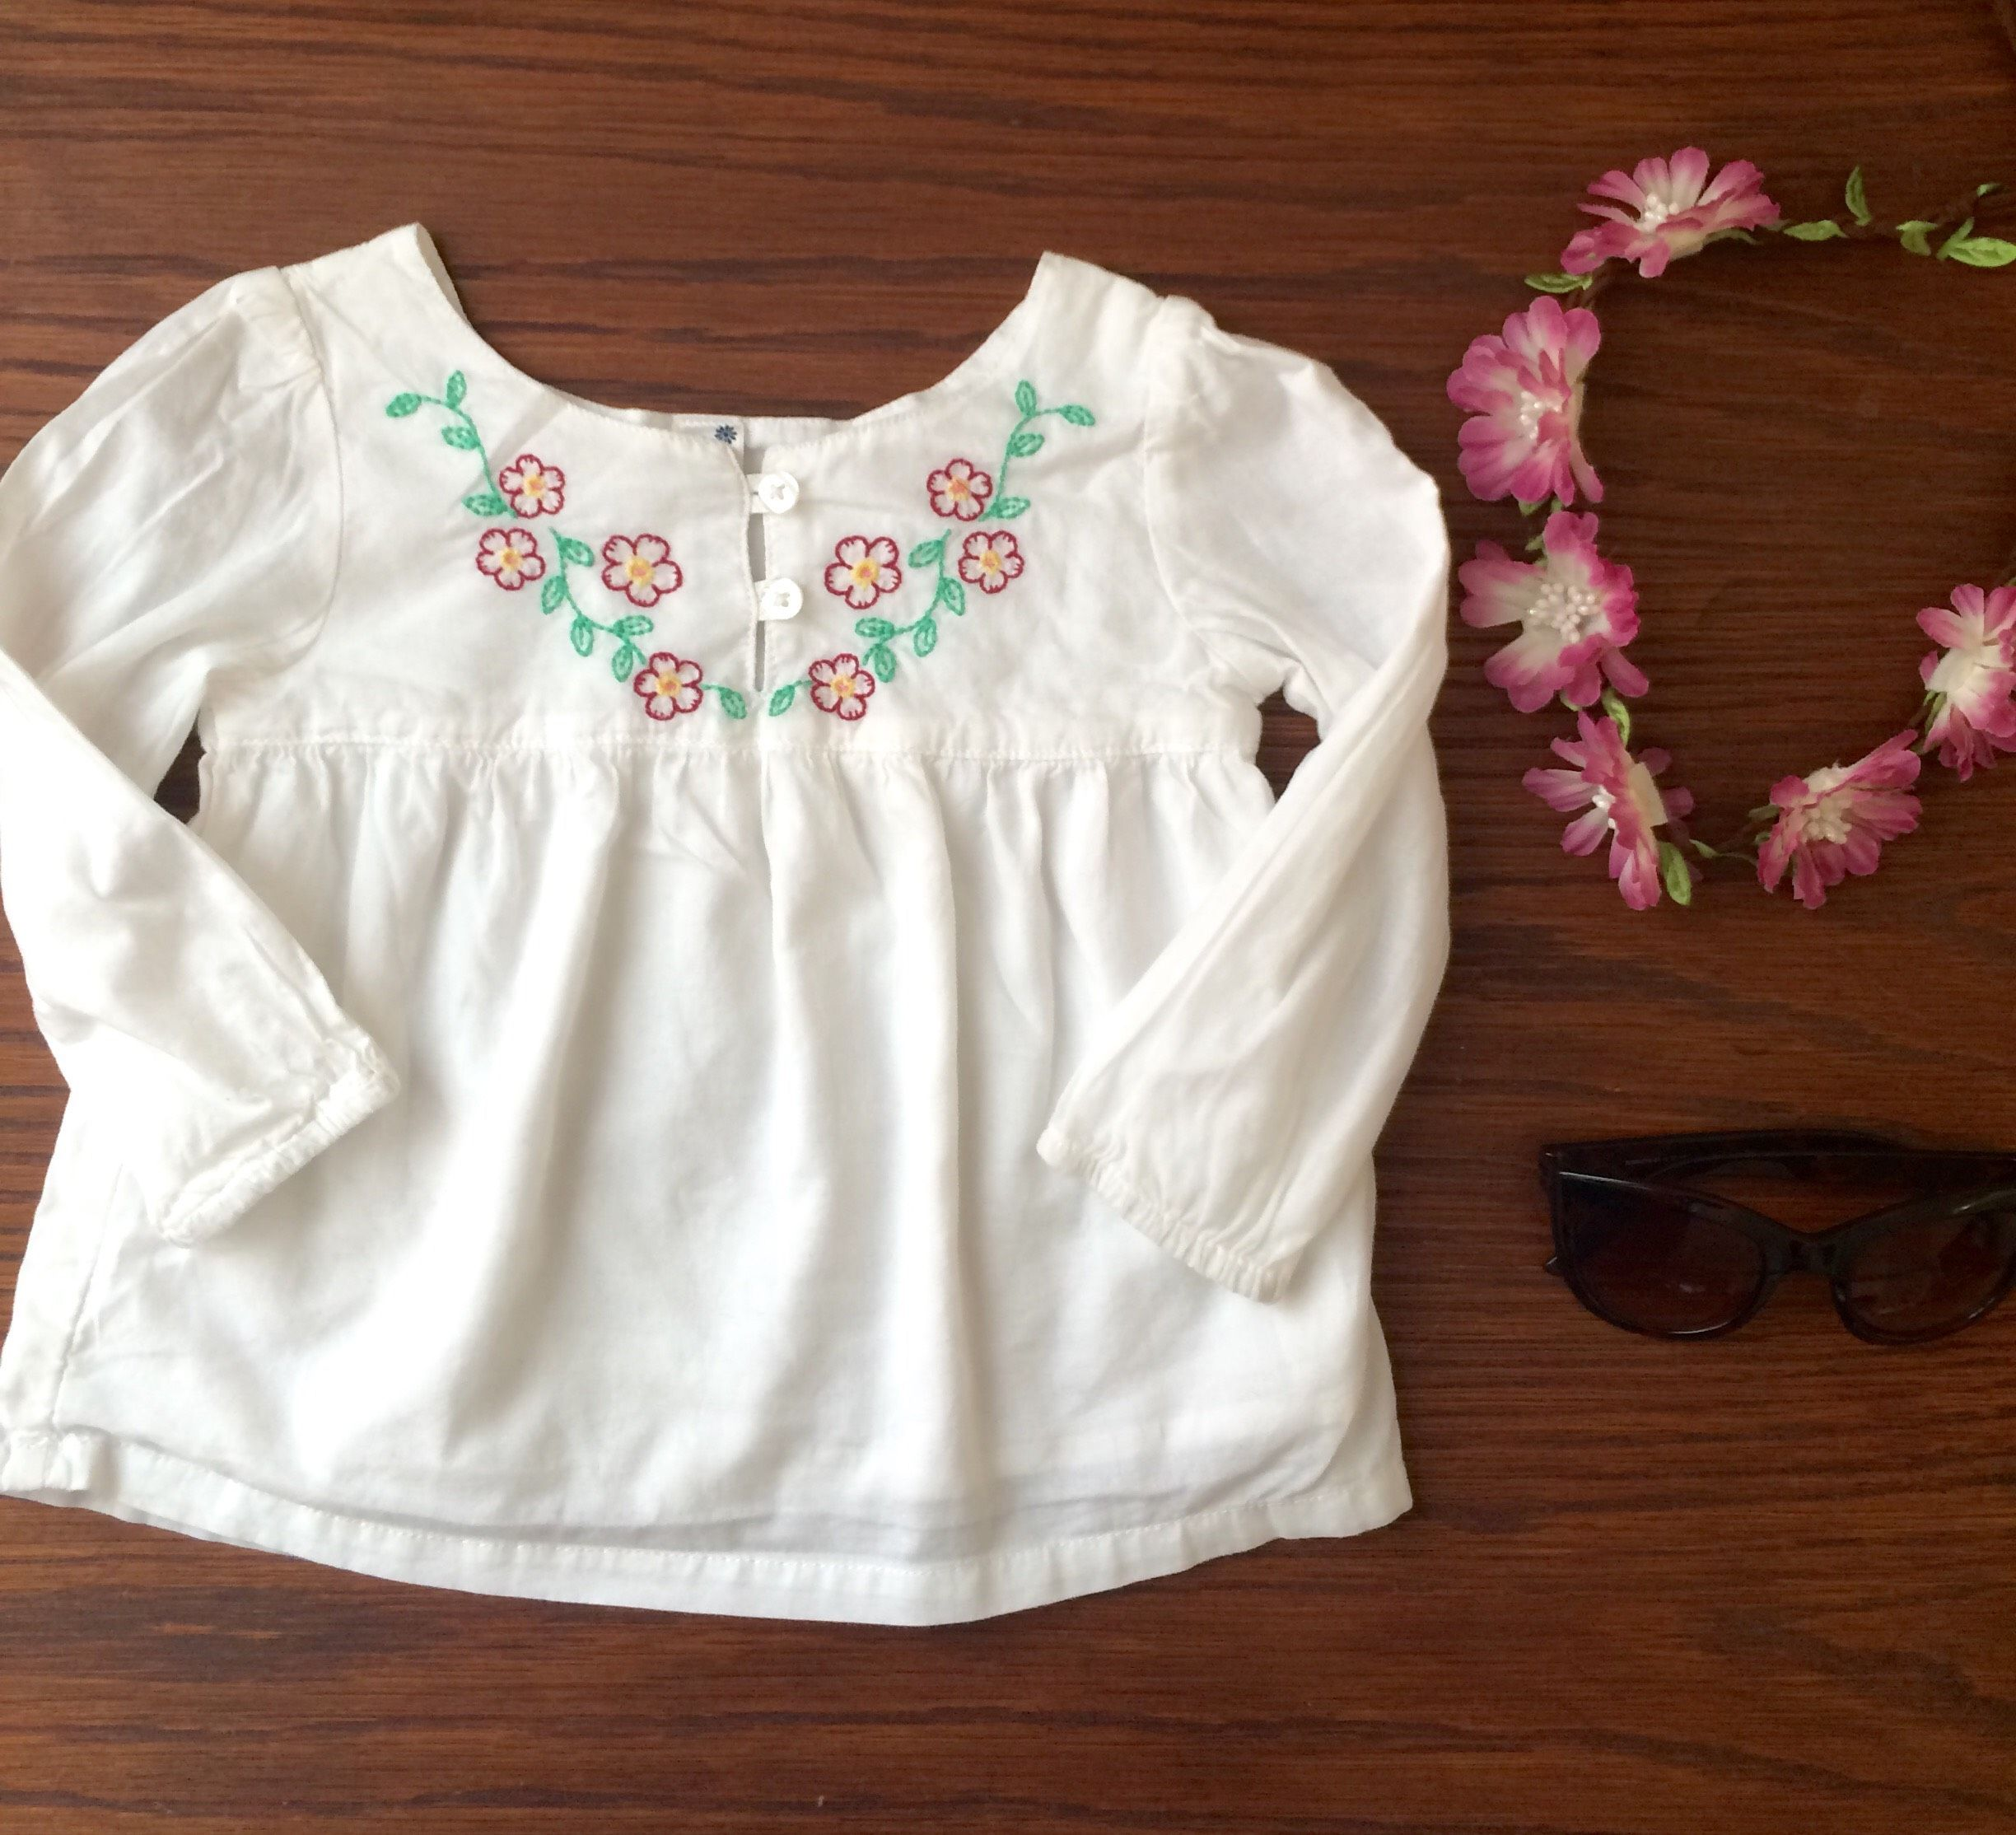 Check out this listing on Kidizen: White Boho Top With Floral Embroidery via @kidizen #shopkidizen